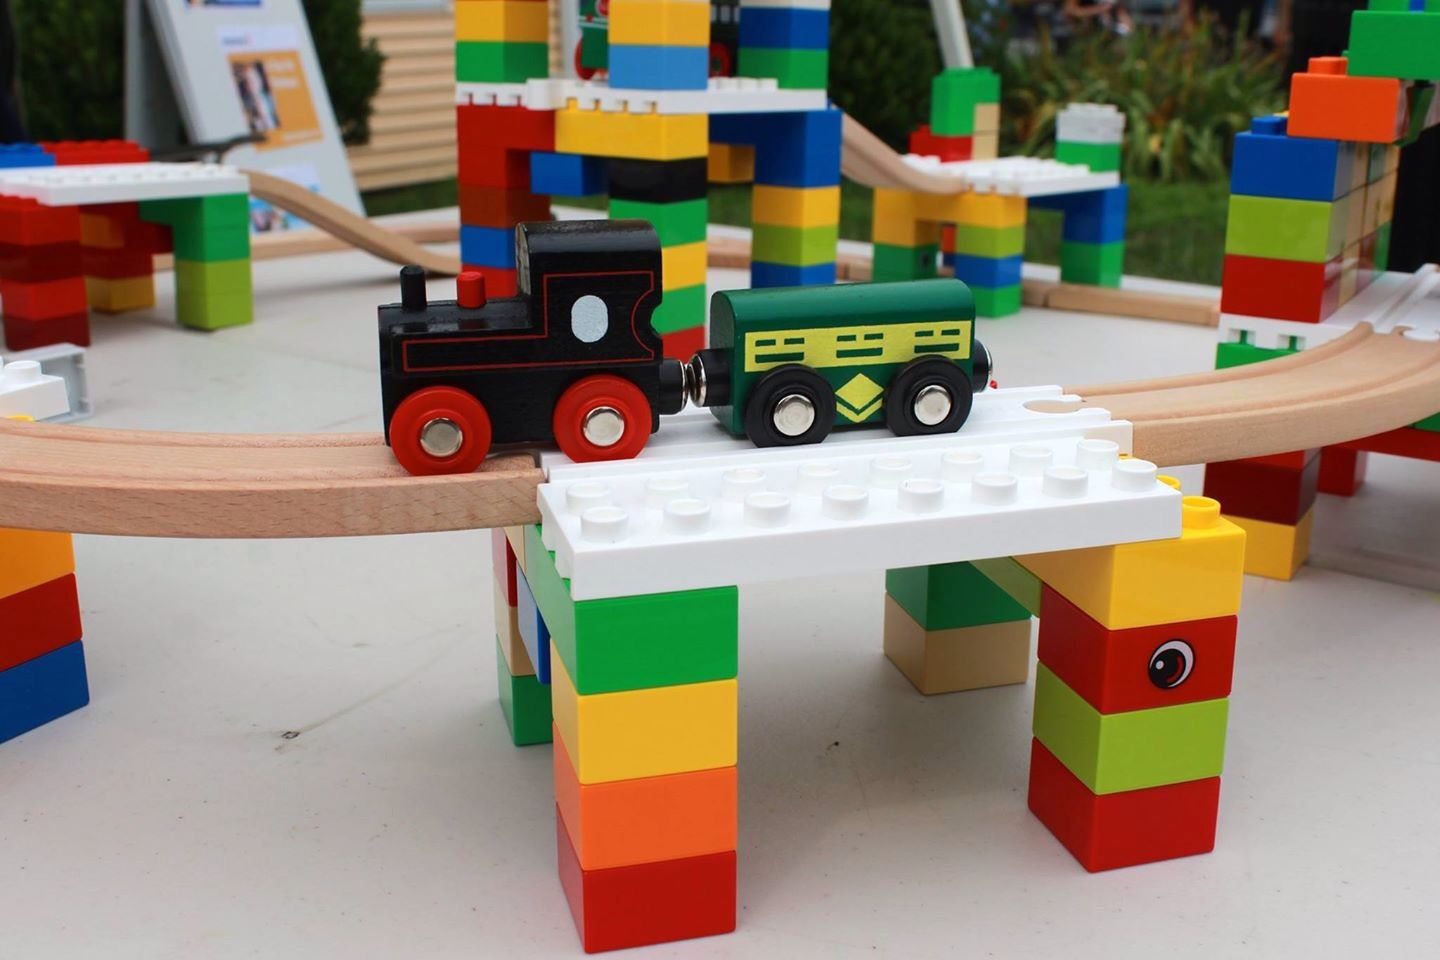 Lego Like Toys : Combine classic building blocks like duplo lego and